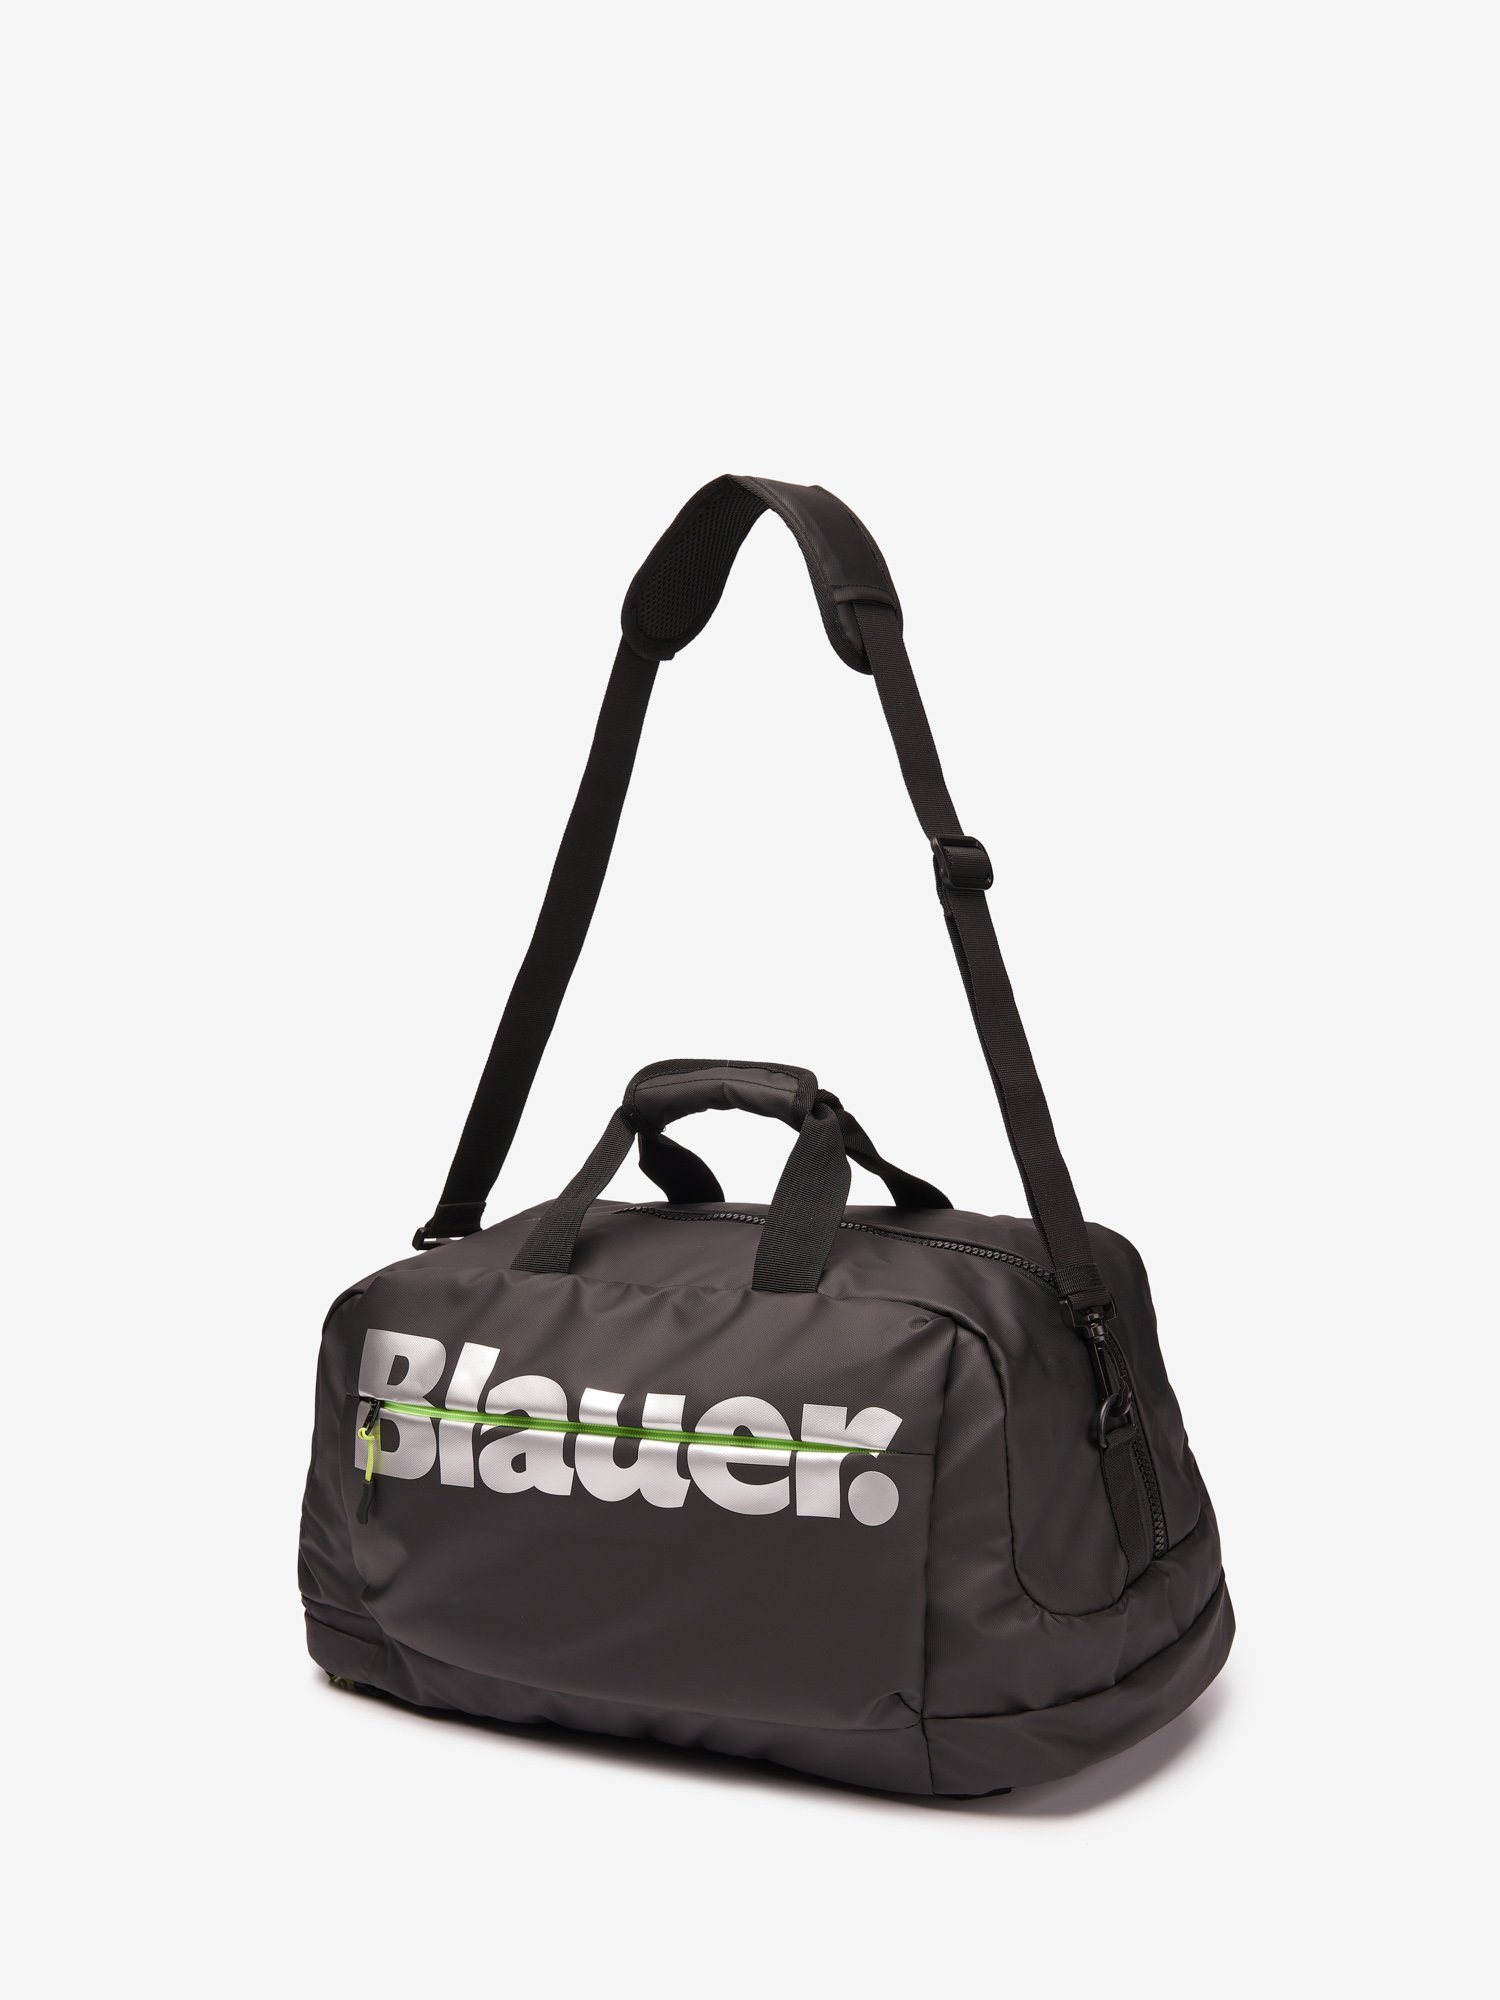 JOSH TRAVEL BAG - Blauer